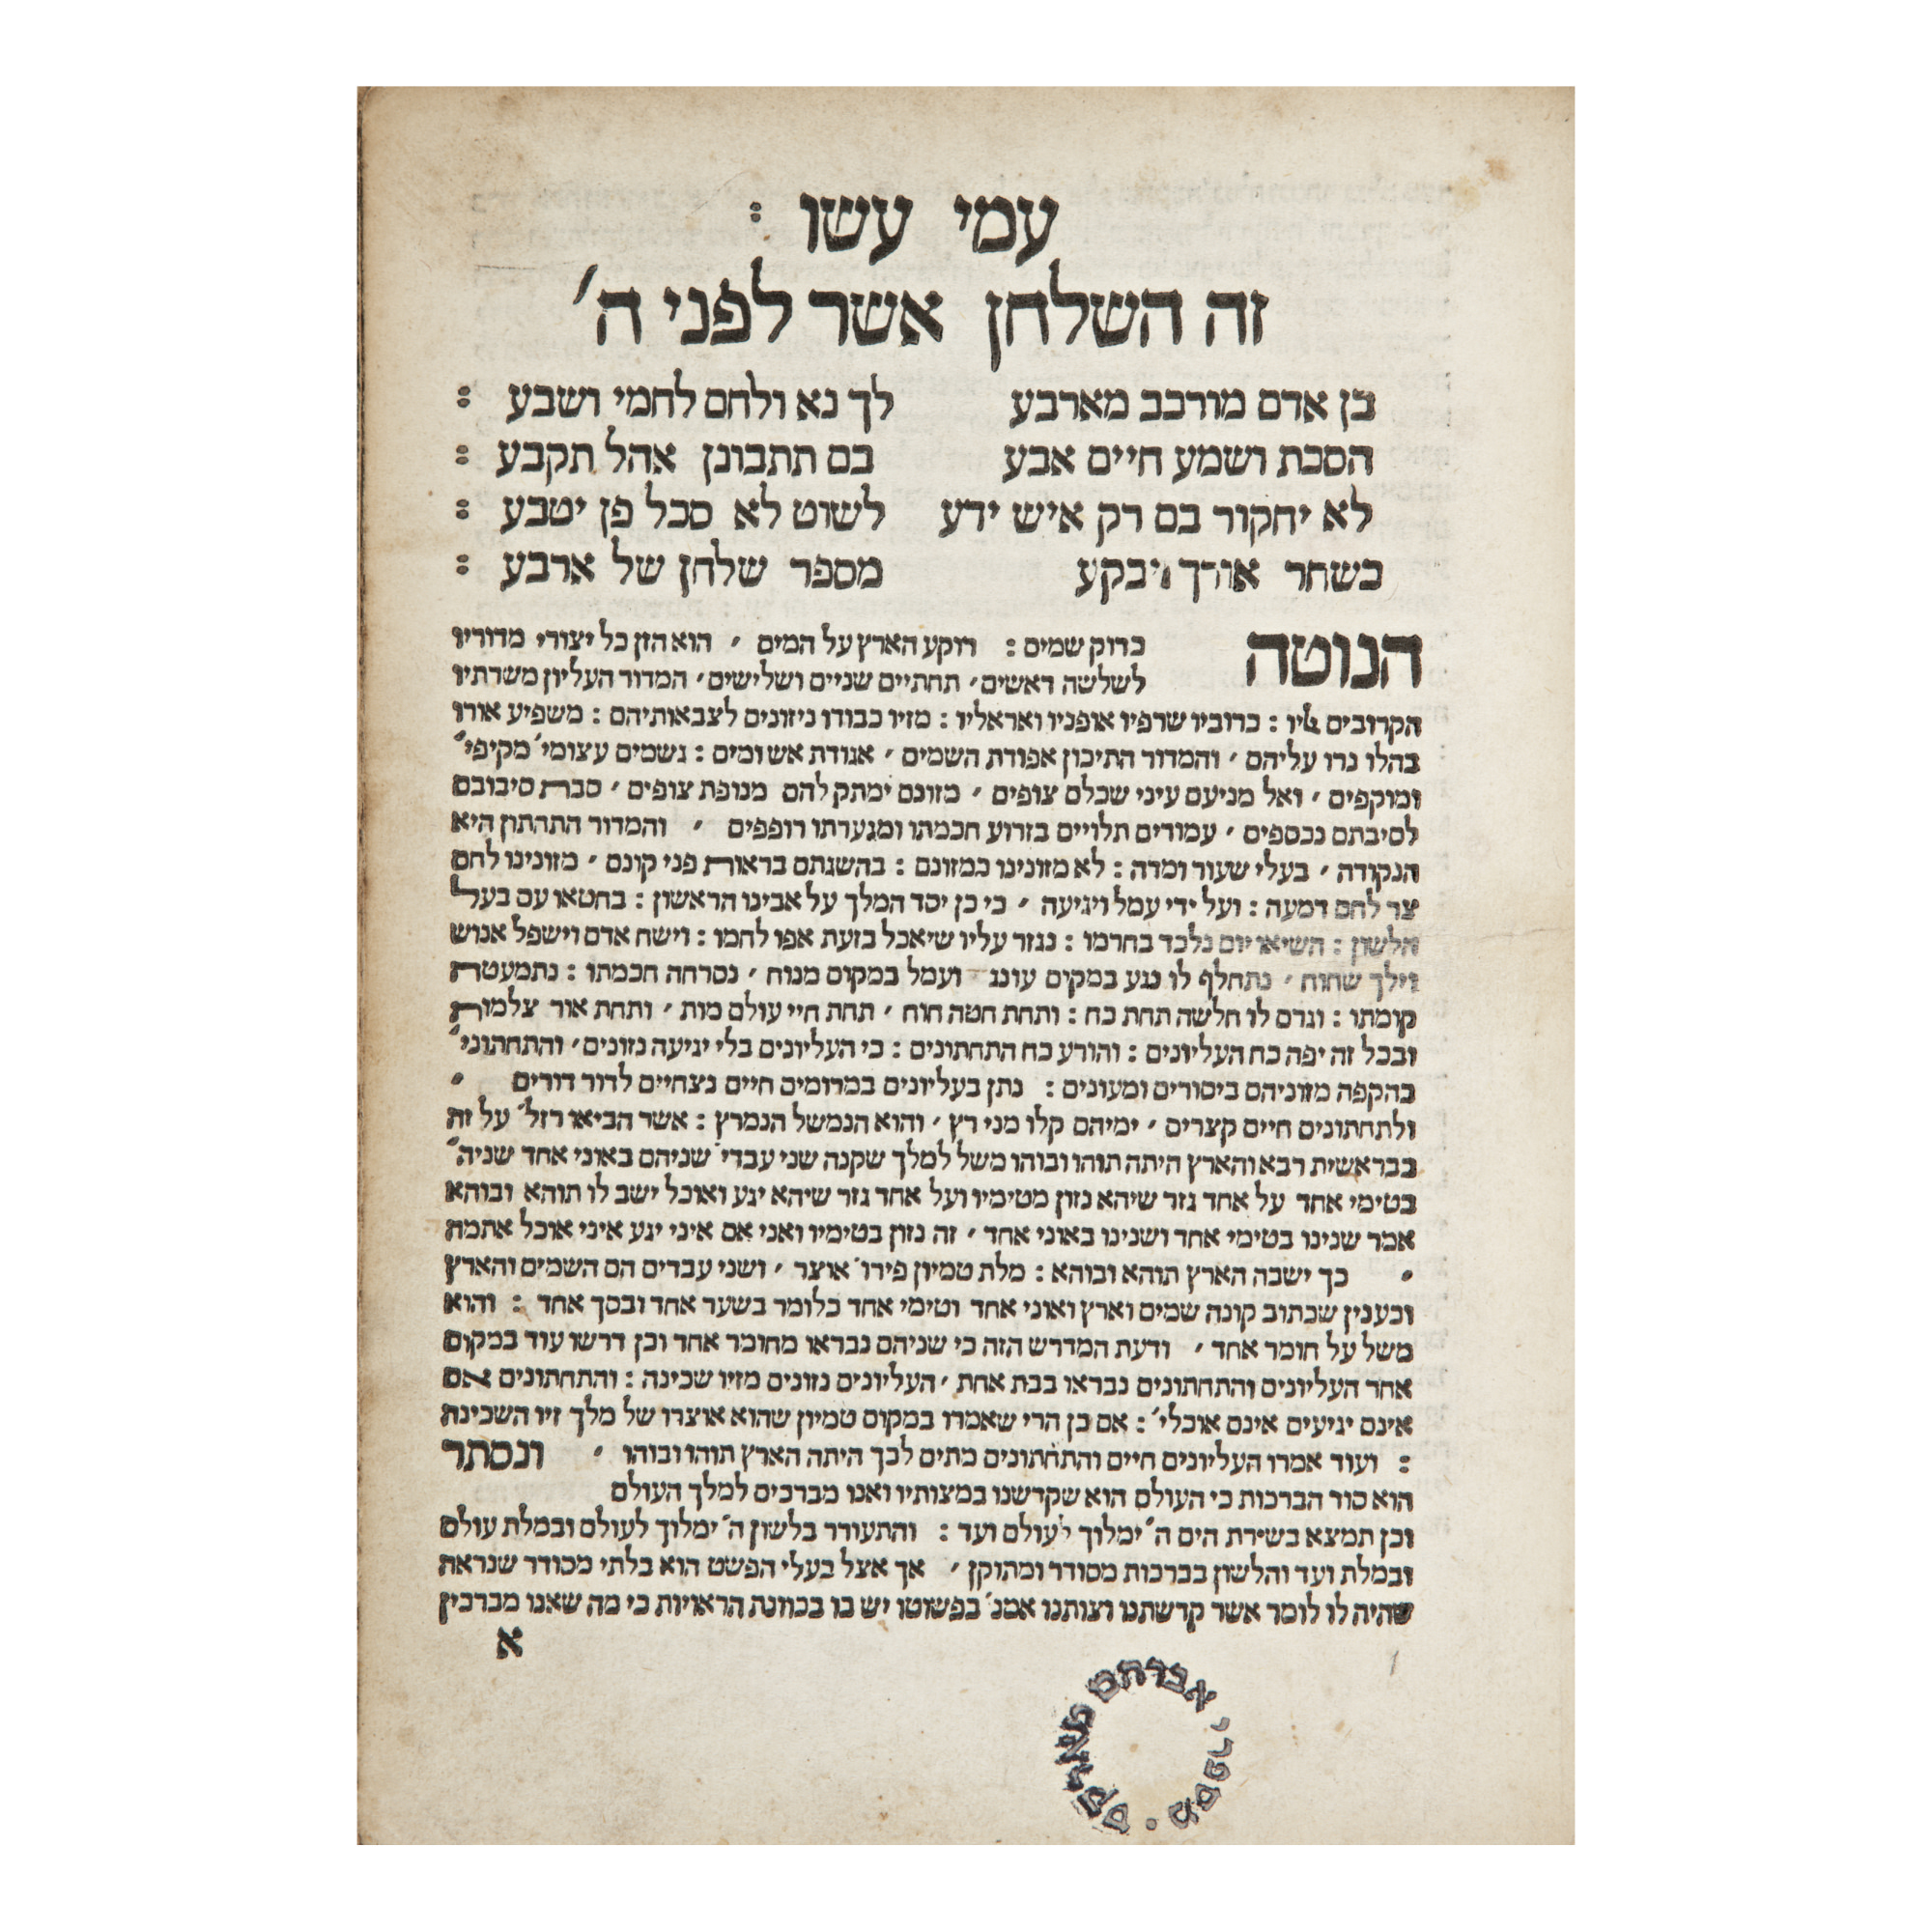 SEFER SHULHAN SHEL ARBA (LAWS RELATING TO MEALS AND TABLE MANNERS), [RABBI BAHYA BEN ASHER], [MANTUA: SAMUEL BEN MEIR LATIF, CA. 1514]